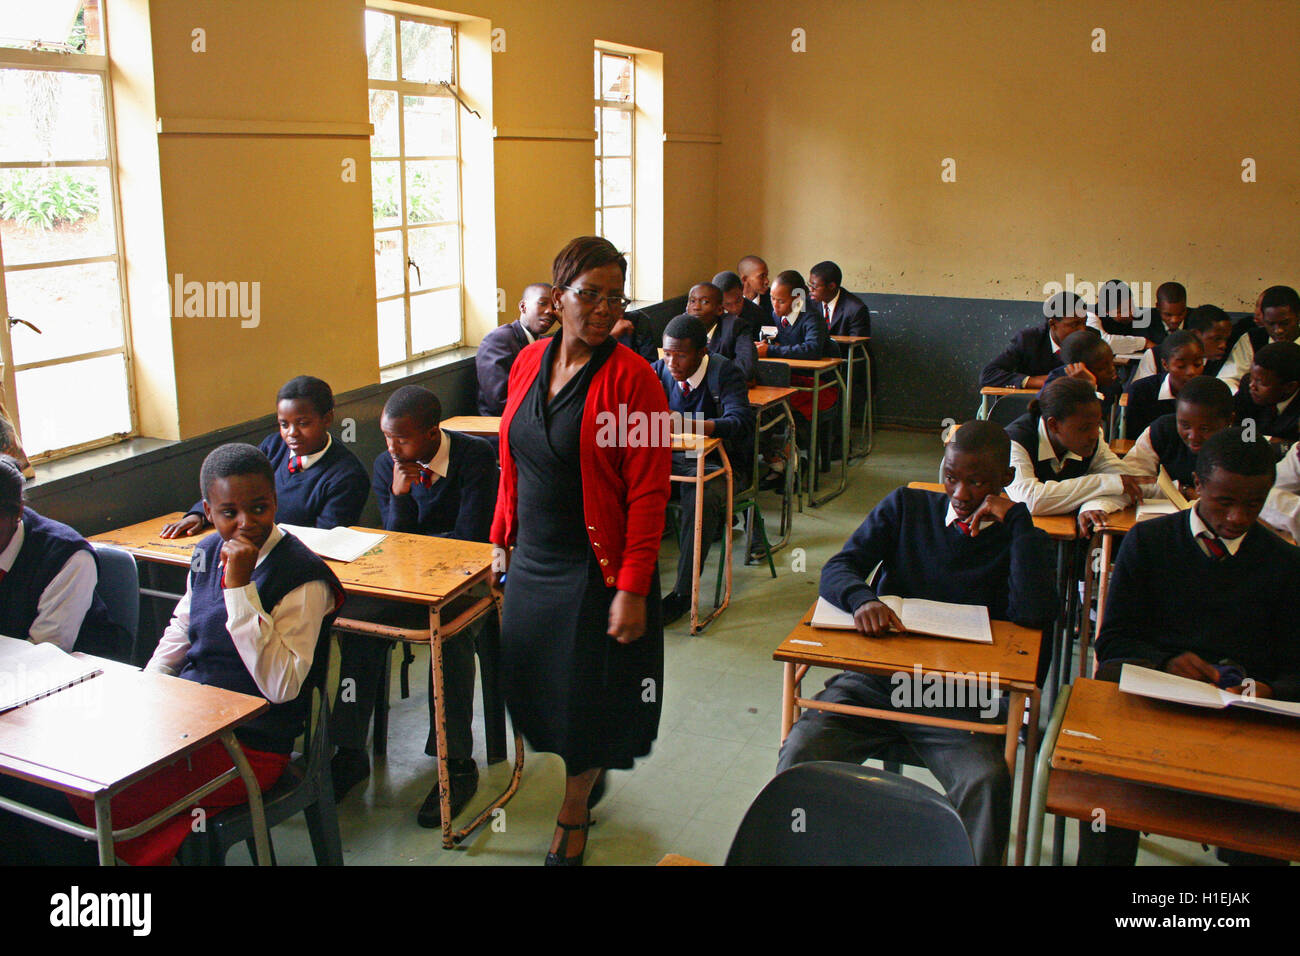 School teacher with school children in classroom, St Mark's School, Mbabane, Hhohho, Kingdom of Swaziland - Stock Image